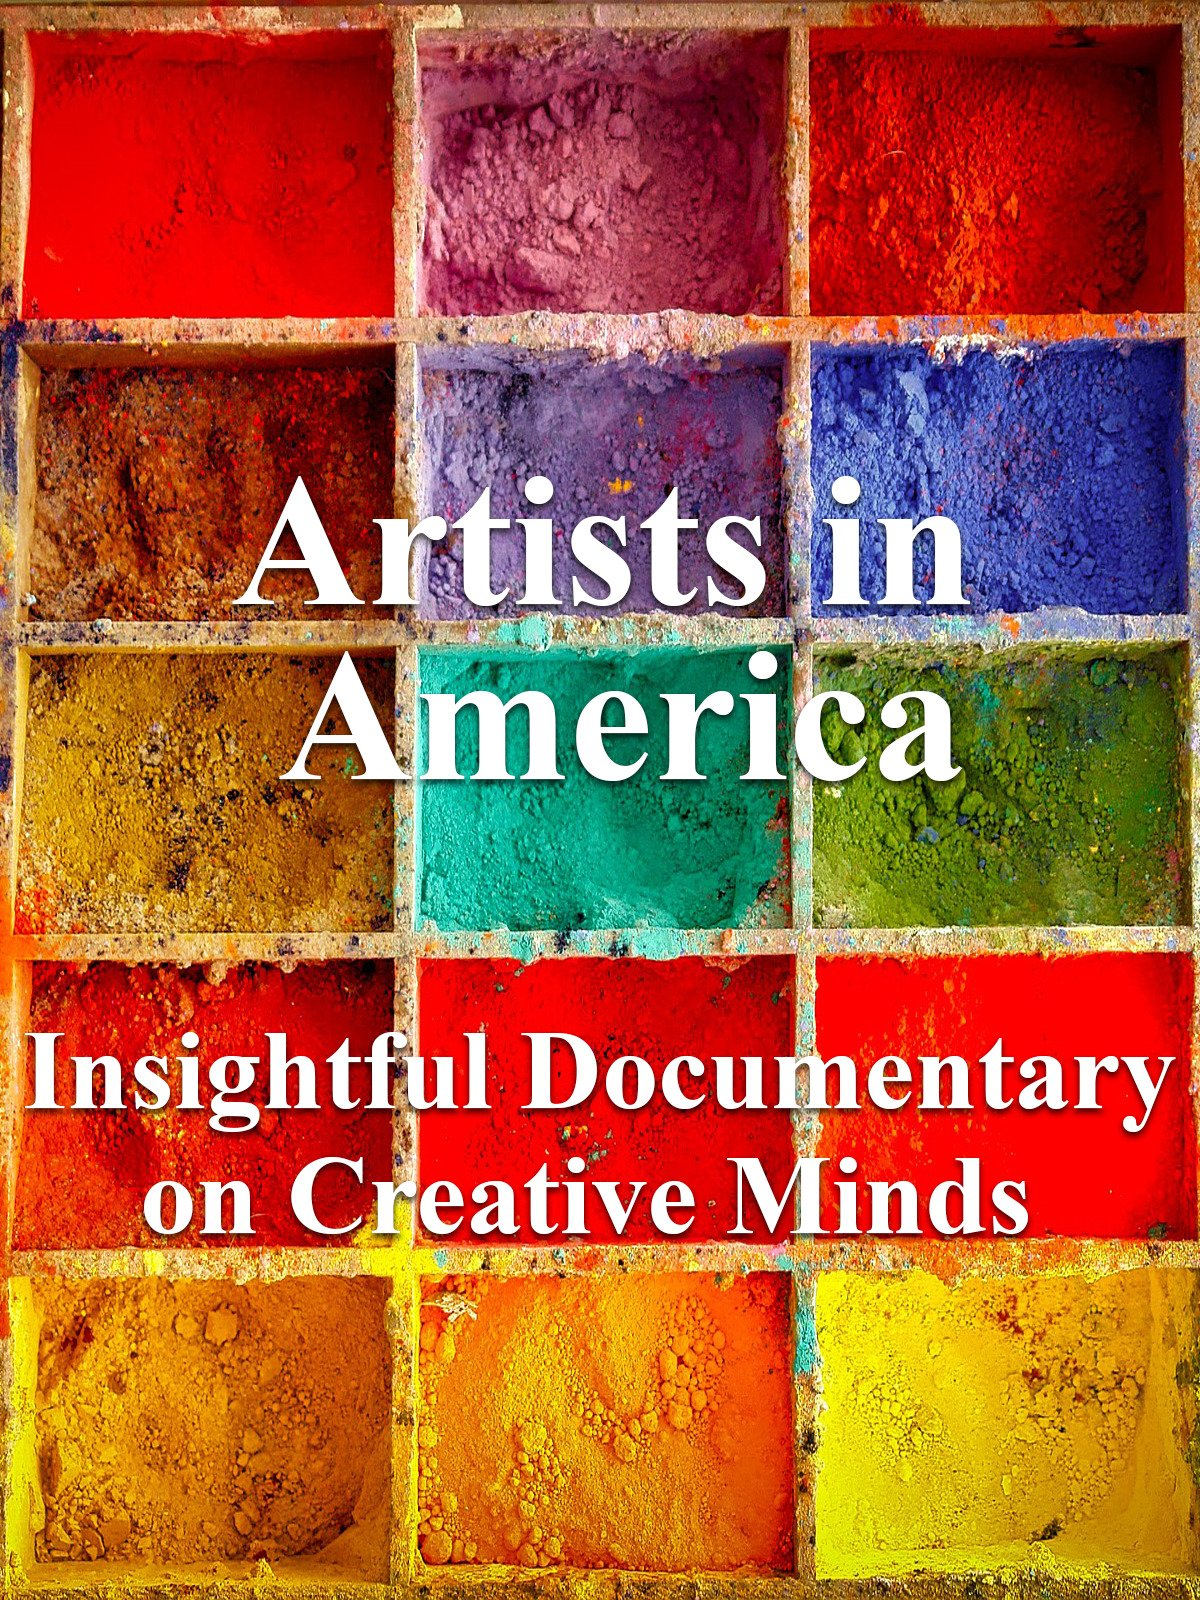 Artists in America Insightful Documentary on Creative Minds